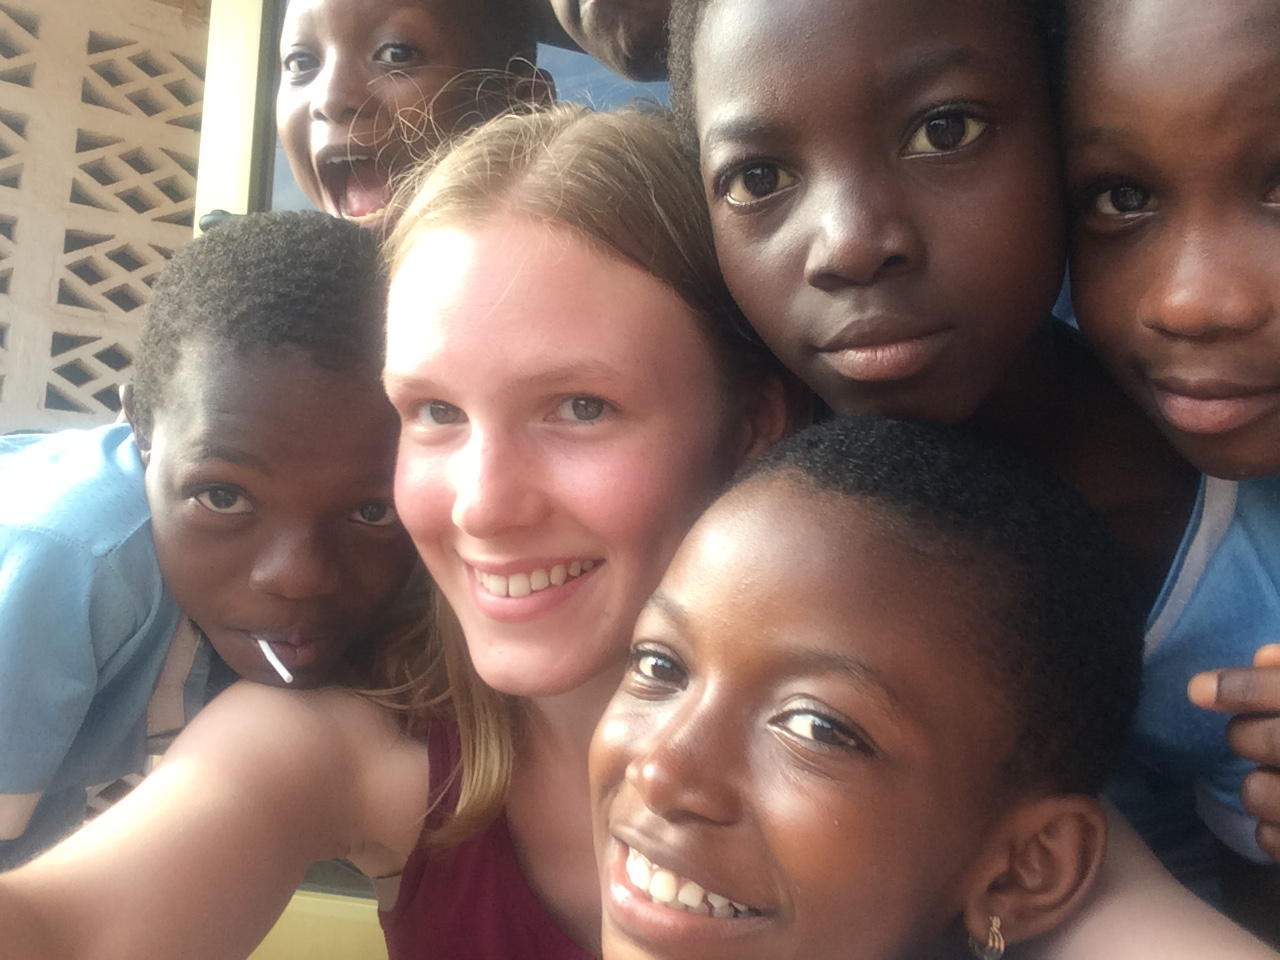 Kisseman poses with African children